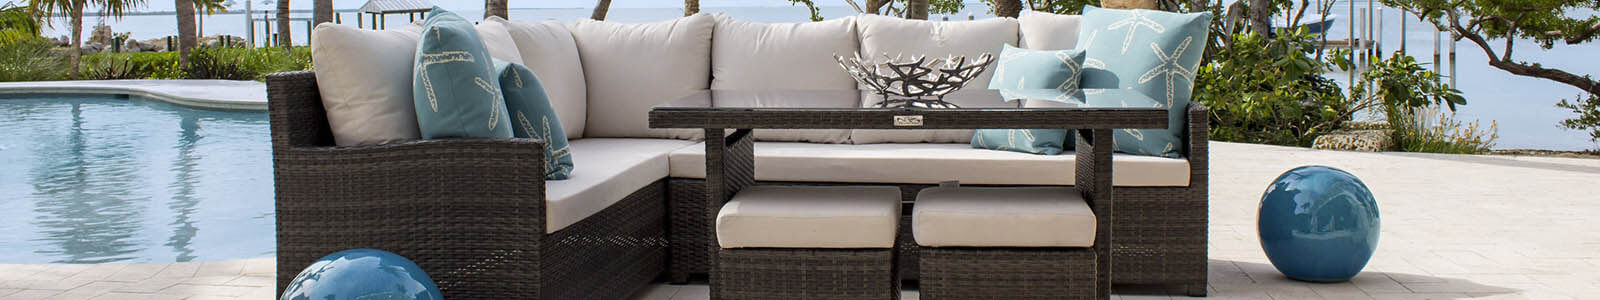 Hospitality Rattan Outdoor Banner